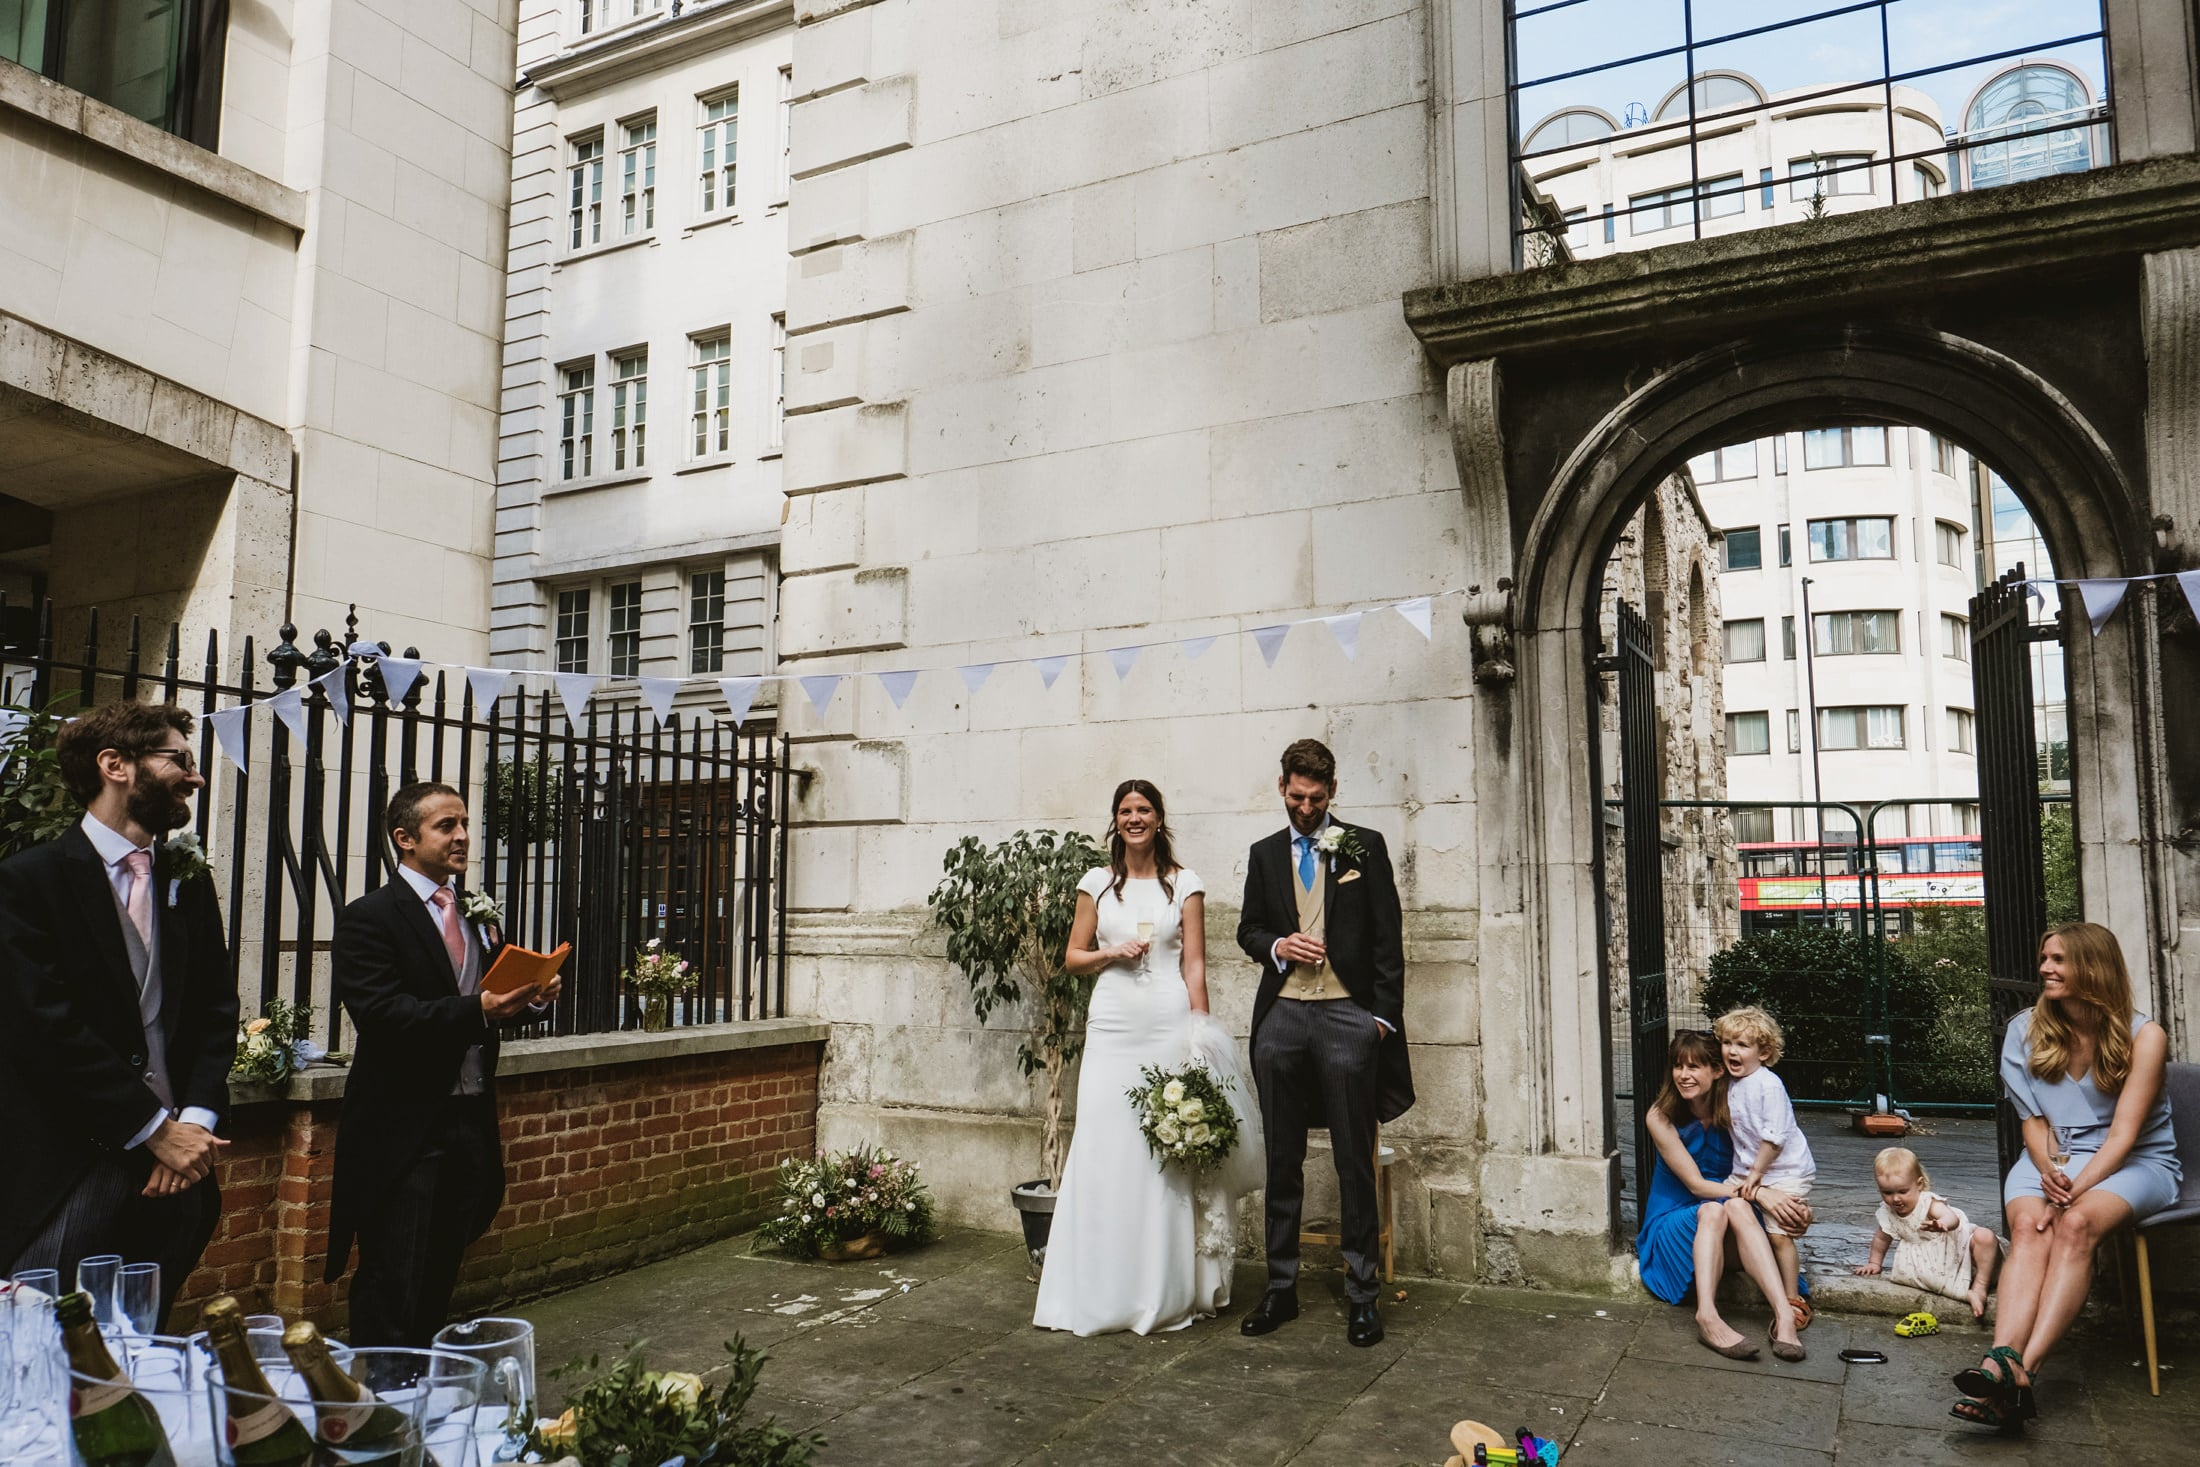 Wedding speeches take place in London's Greyfriars passage